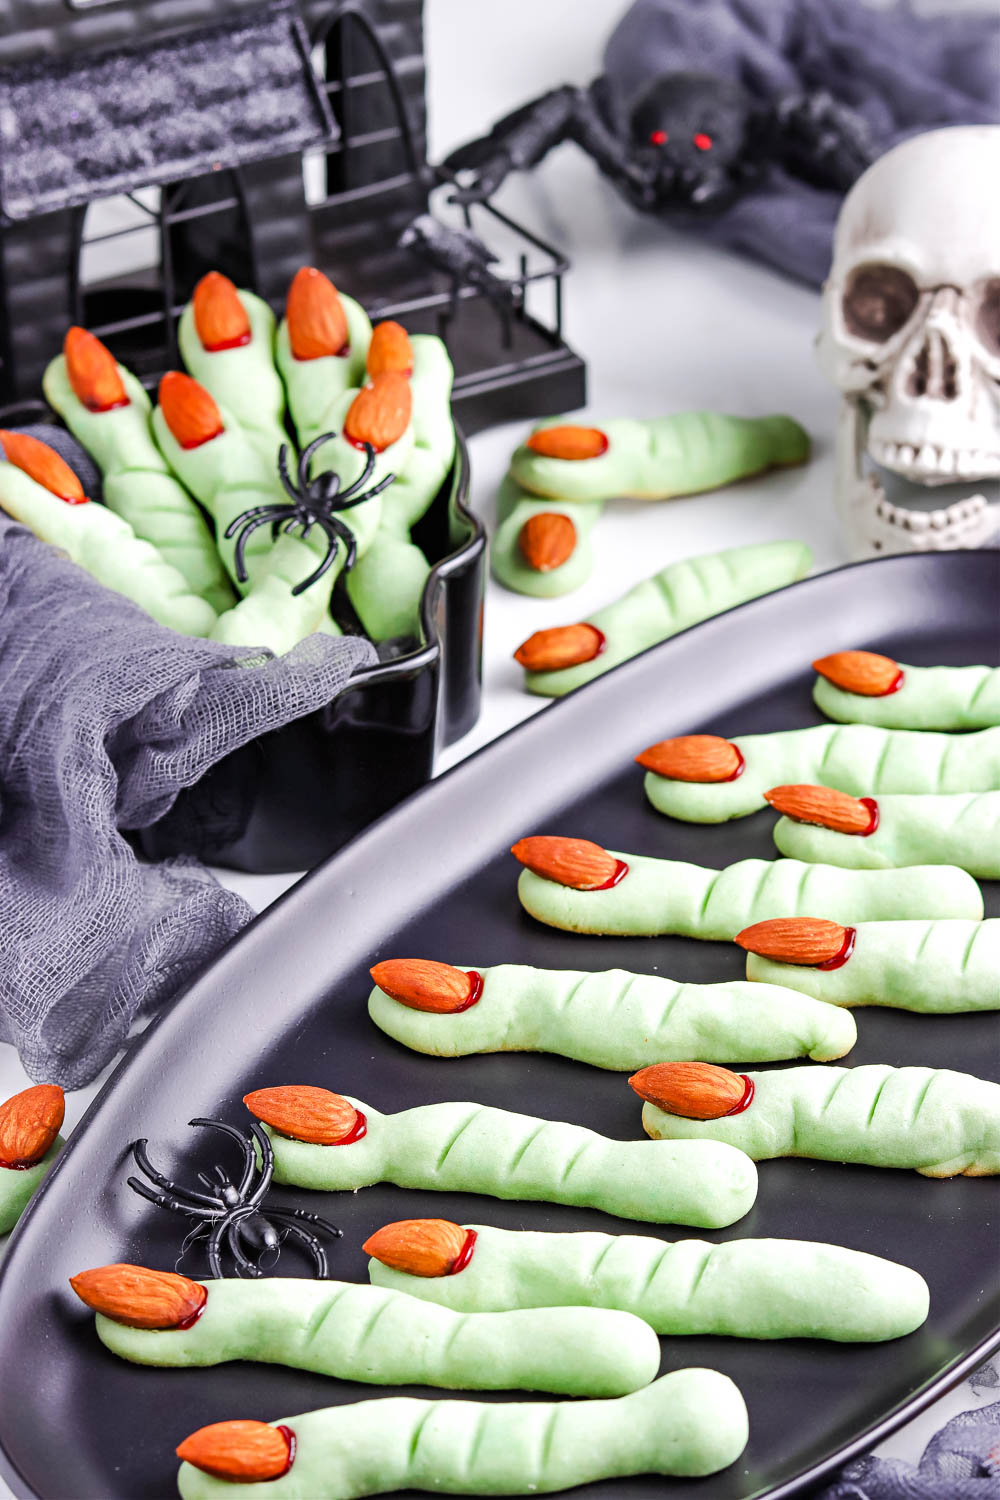 The finished Witch Finger Cookies on a black platter.